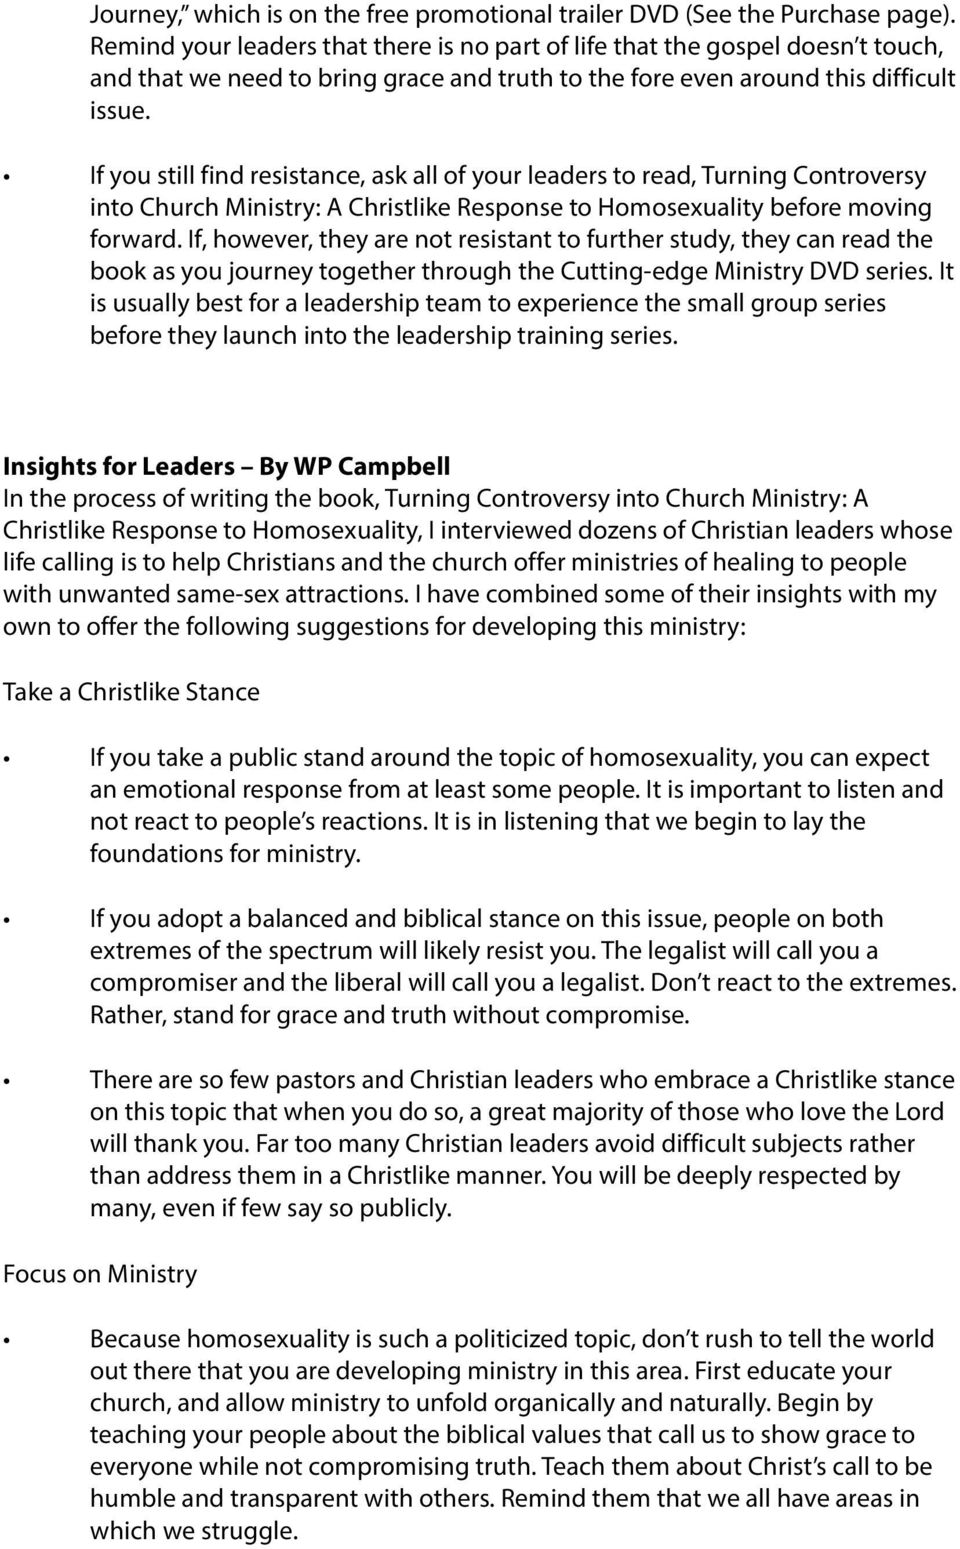 If you still find resistance, ask all of your leaders to read, Turning Controversy into Church Ministry: A Christlike Response to Homosexuality before moving forward.